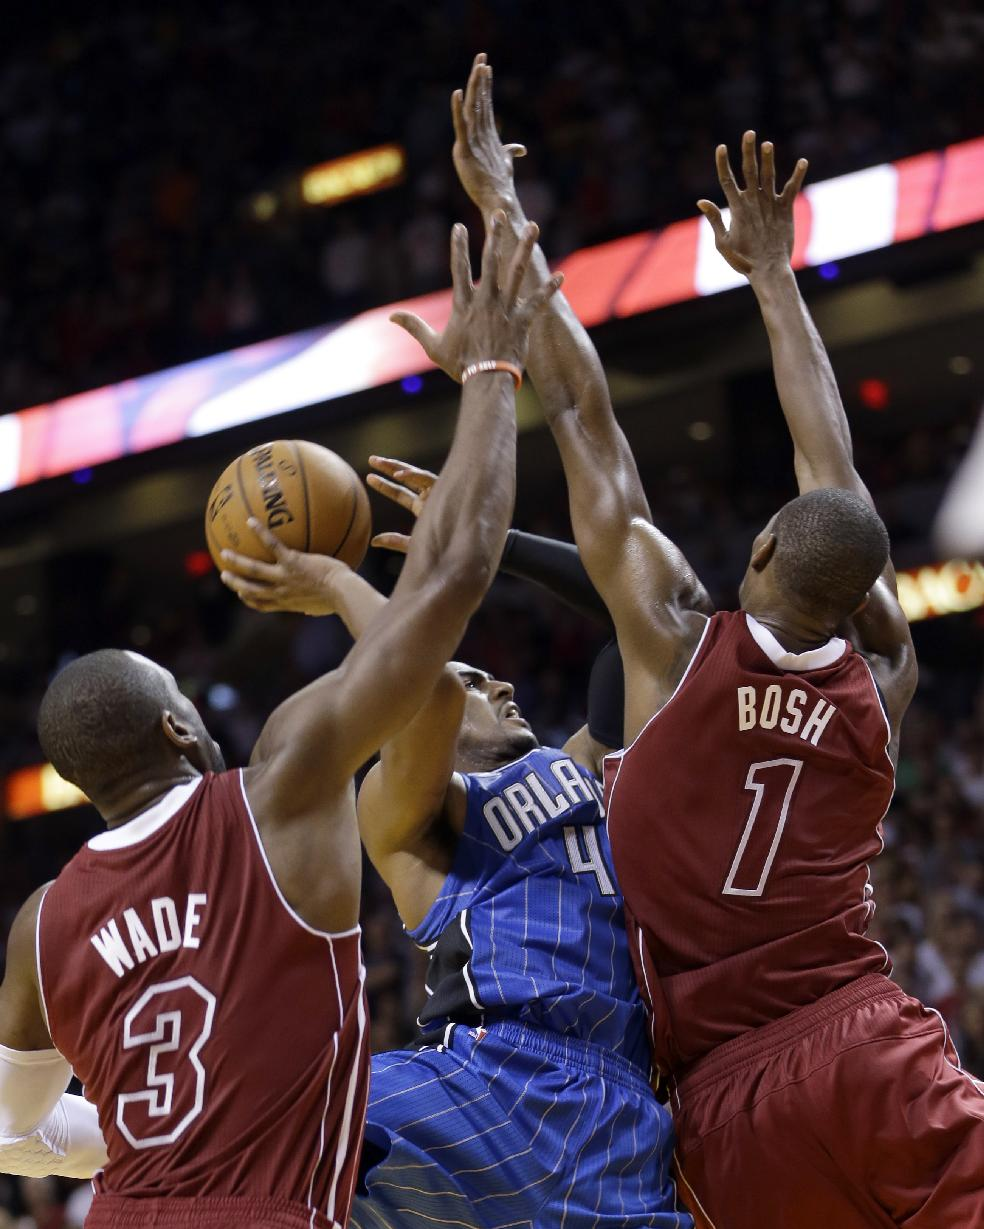 Miami Heat center Chris Bosh (1) and Dwyane Wade (3) apply pressure on Orlando Magic shooting guard Arron Afflalo (4) as he prepares to shoot in the fourth quarter of an NBA basketball game, Saturday, Nov. 23, 2013, in Miami. The Heat won 101-99